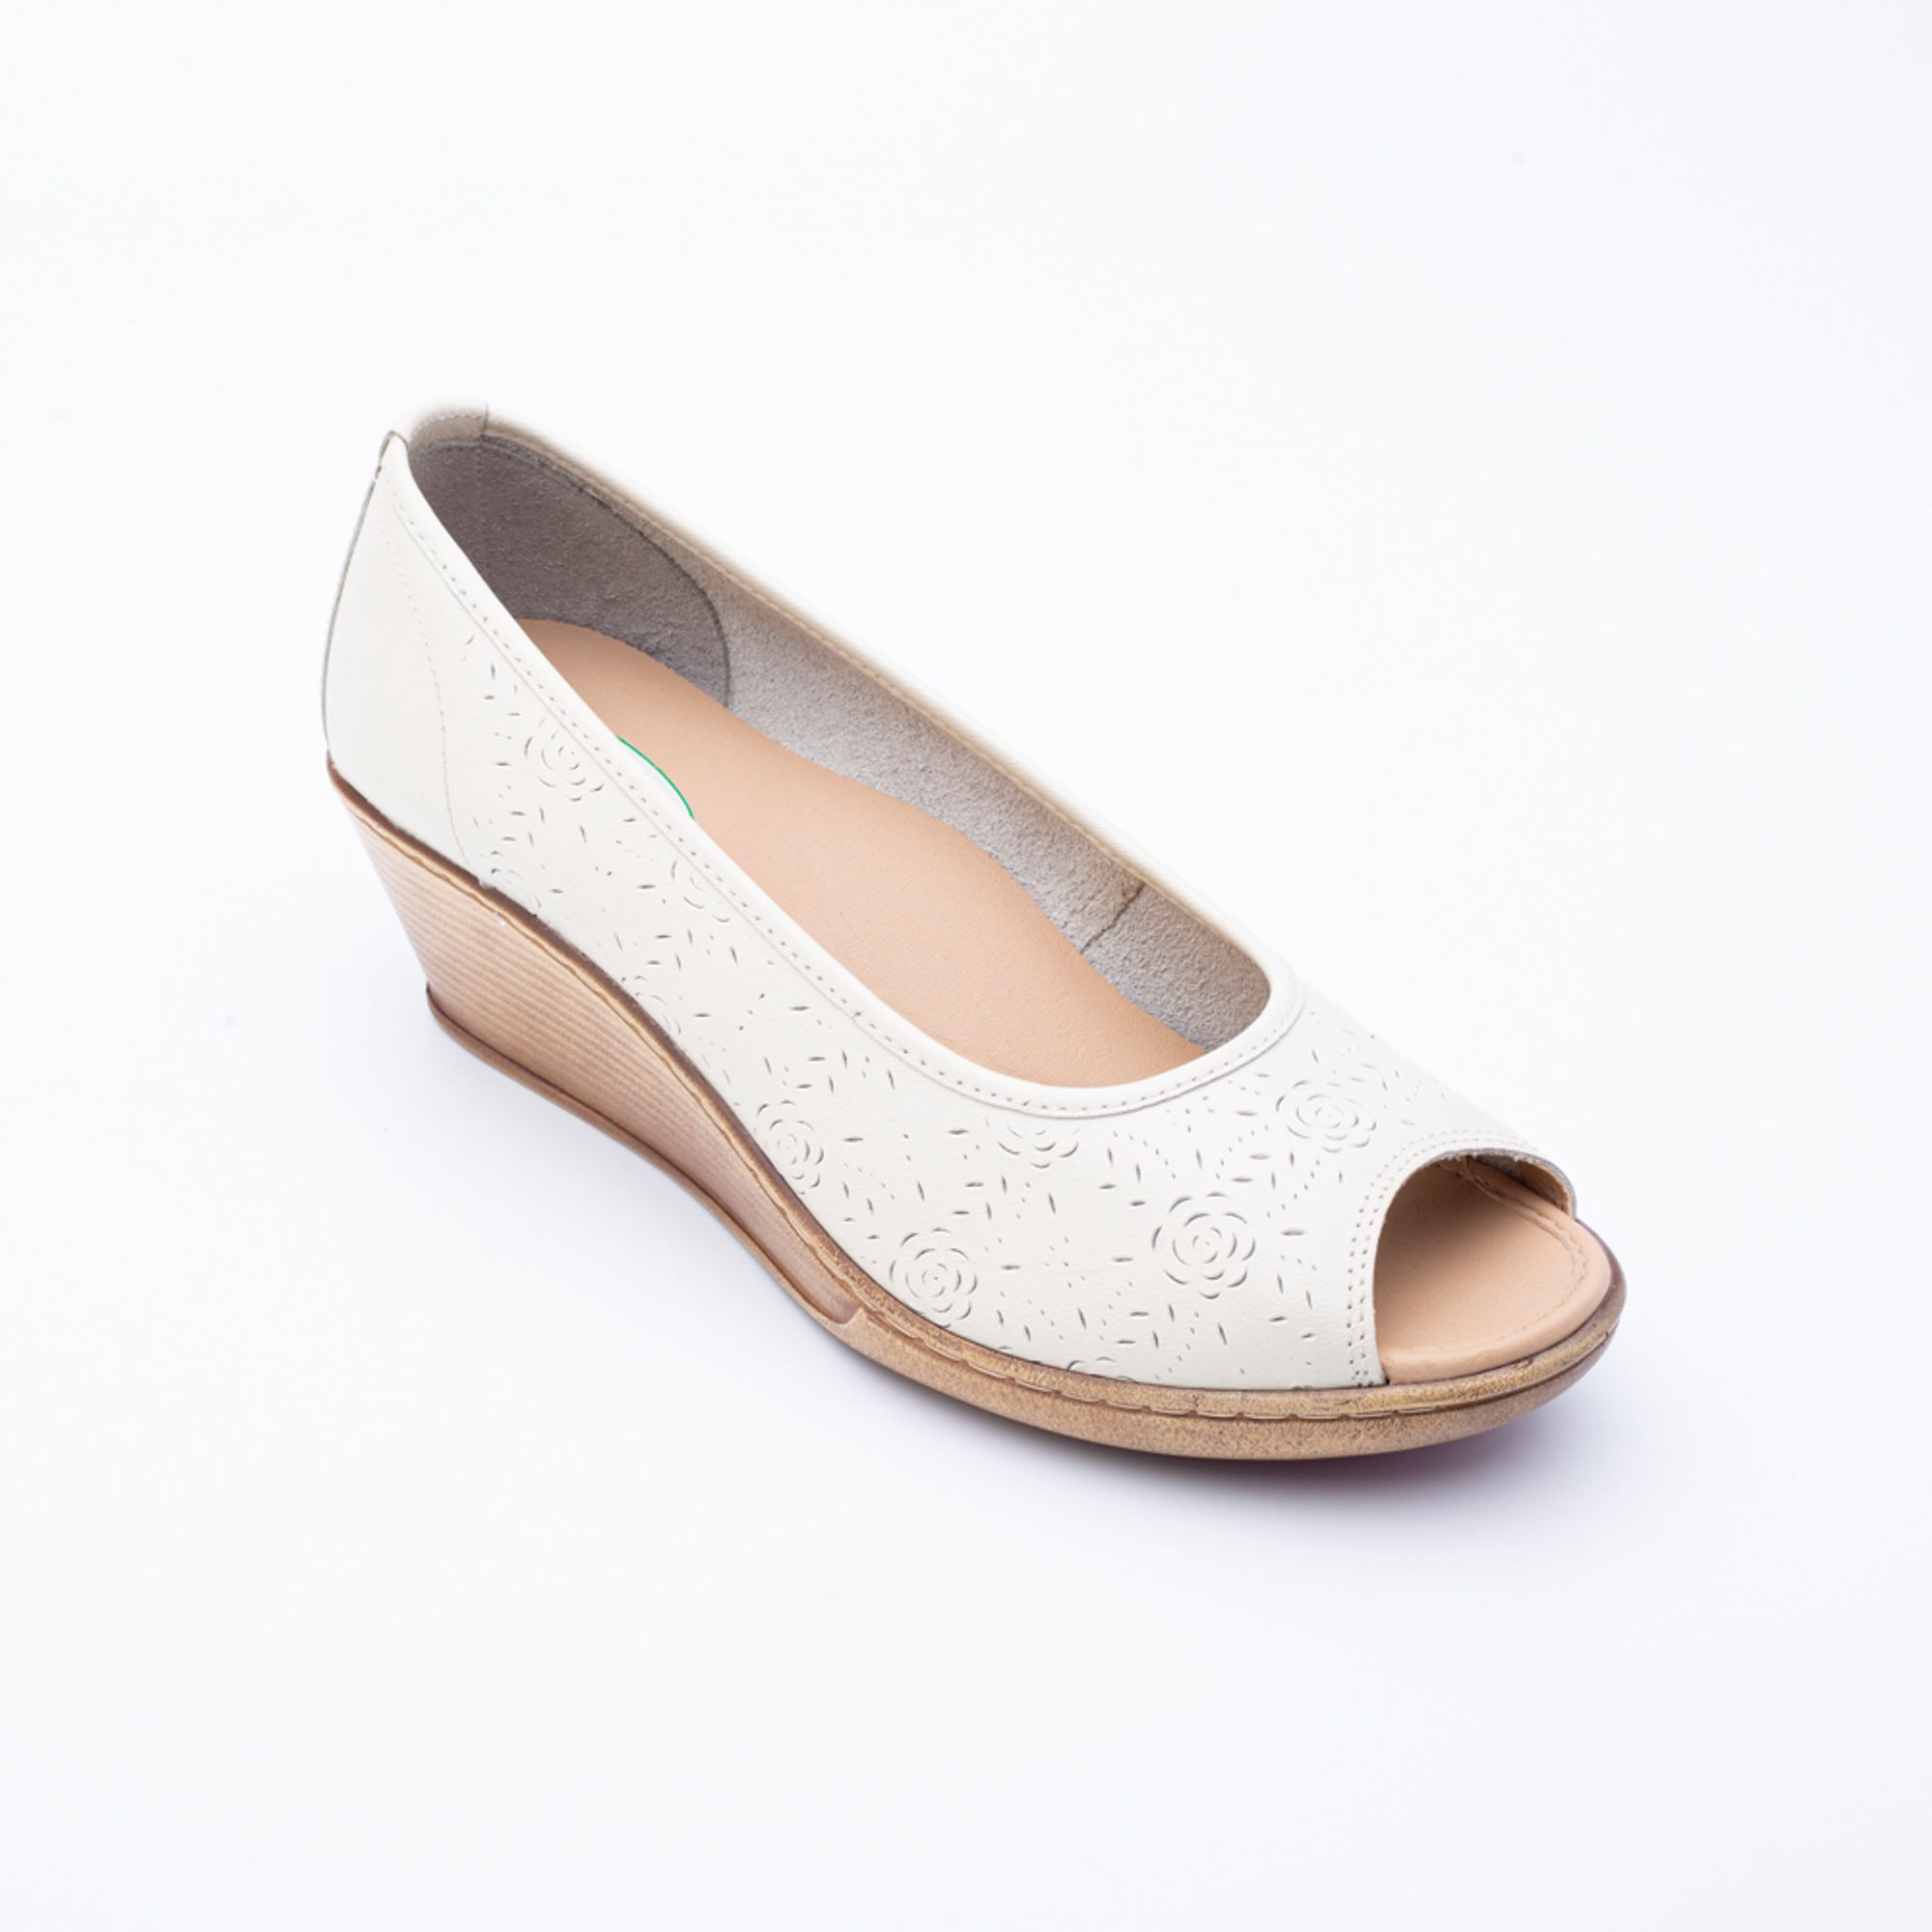 ZAPATOS-FORMALES-ROMULO-MUJER-2631-IN-CL-MM-TB-CU